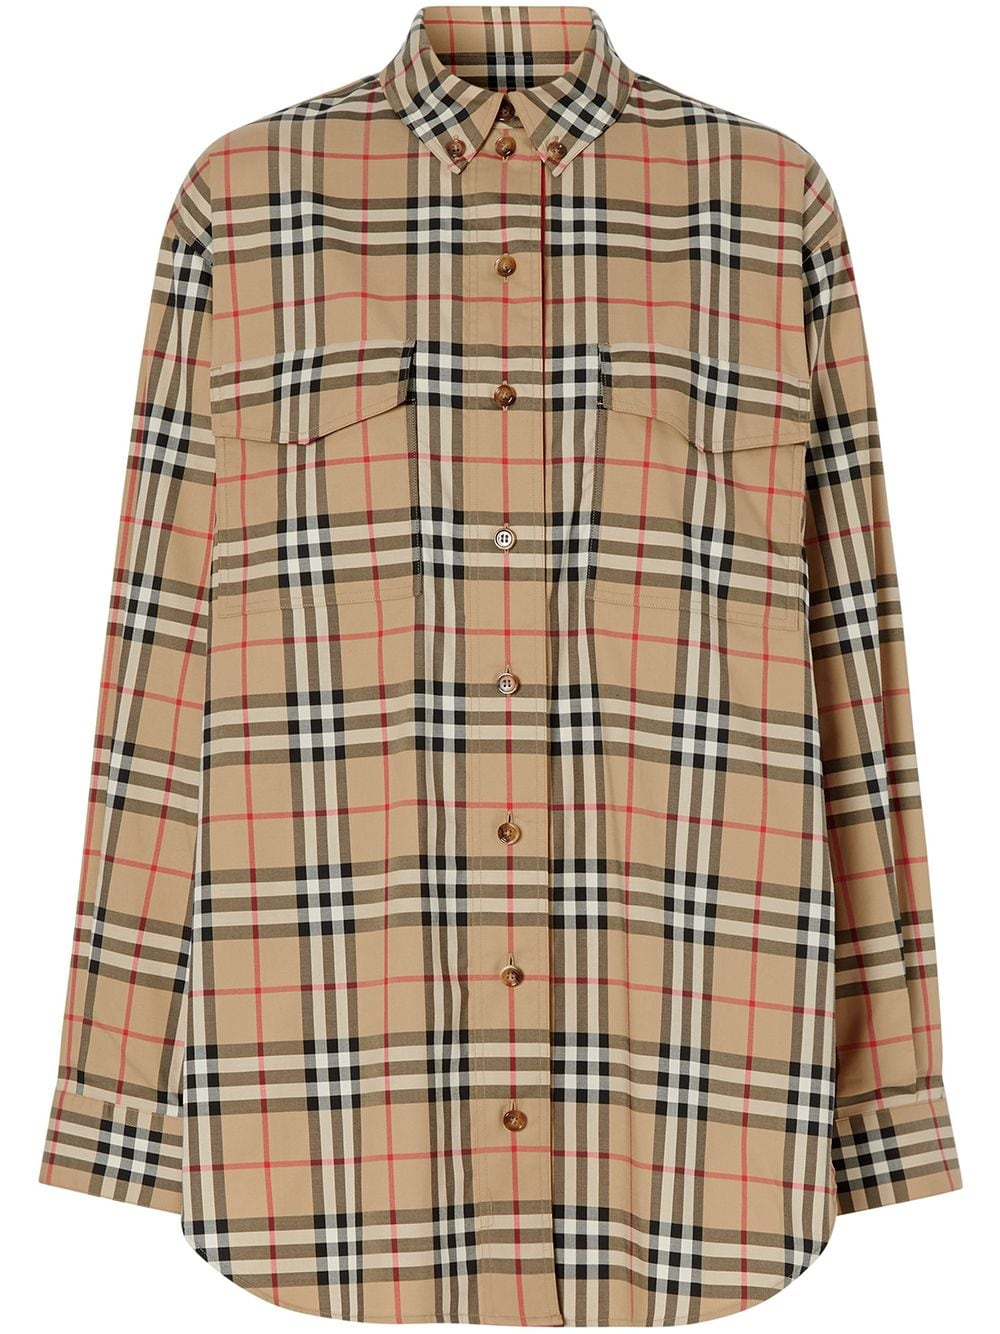 Burberry Vintage Check Stretch Cotton Oversized Shirt - Nude von Burberry